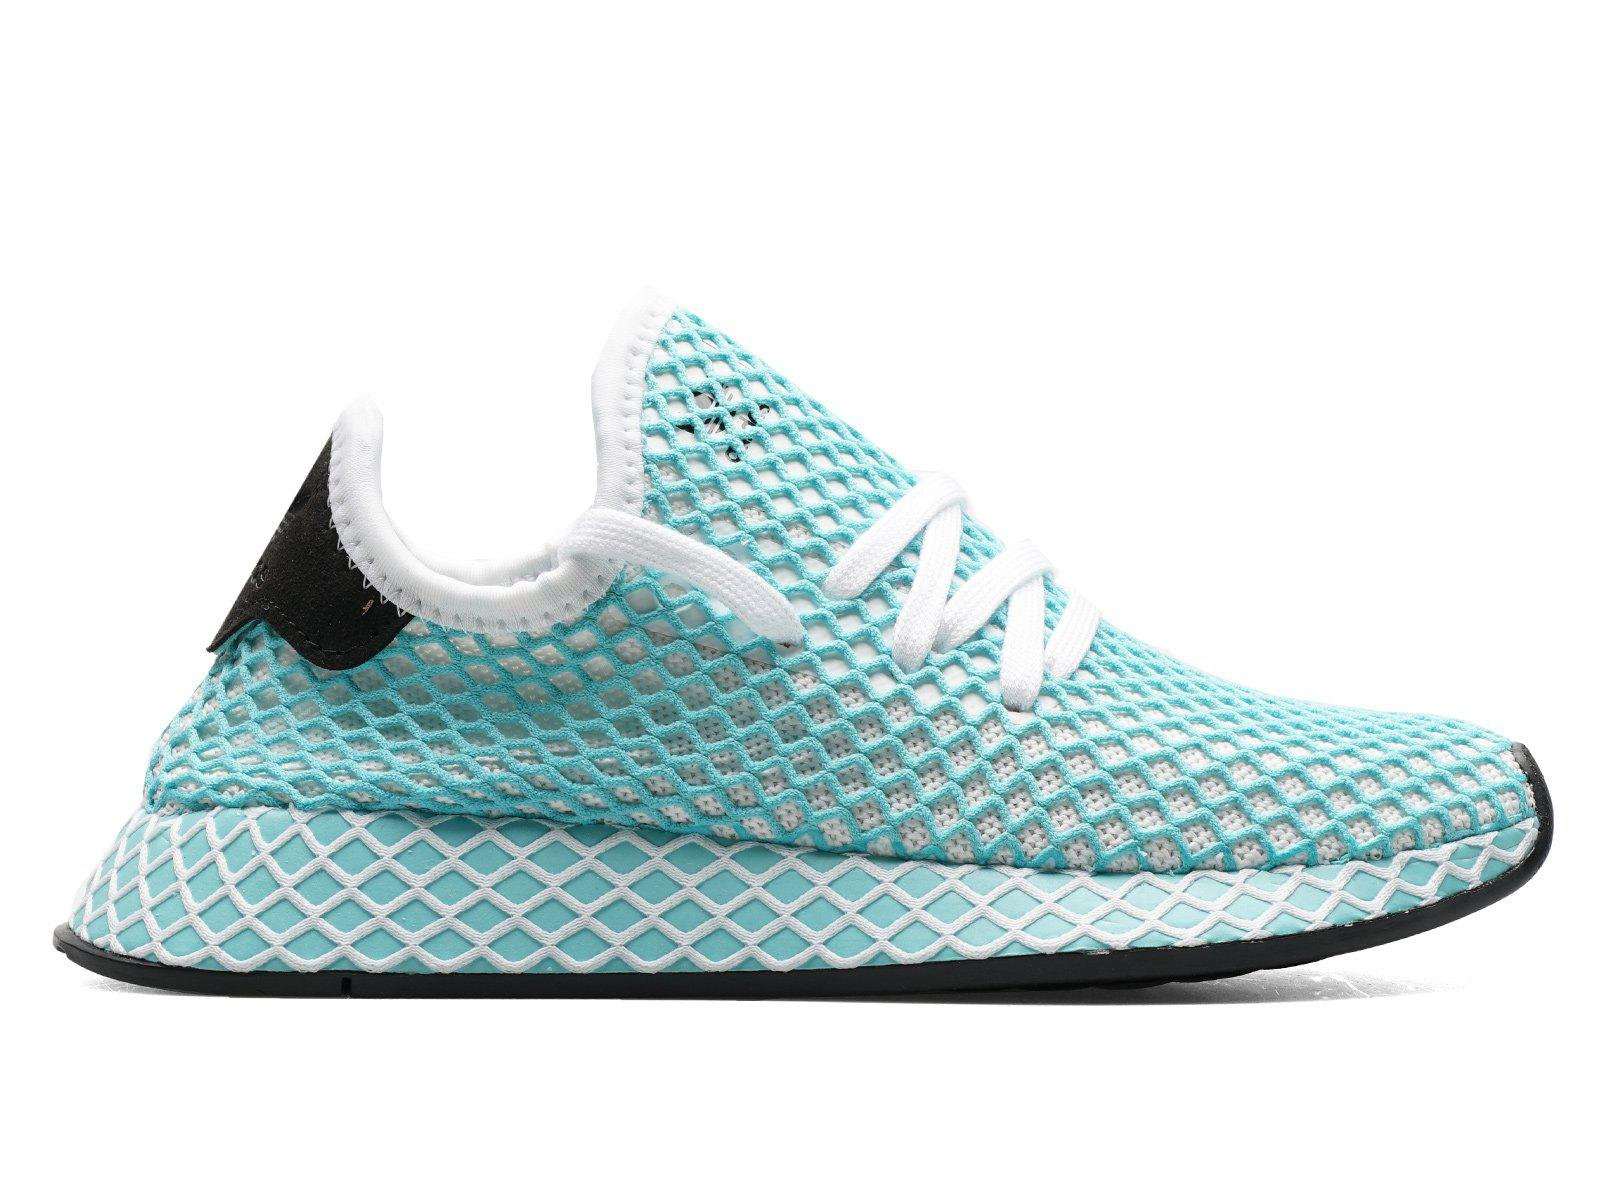 outlet store 2481a a85ef Women s Runner Lyst Pxfczb Parley Adidas Deerupt In Blue qqXxw